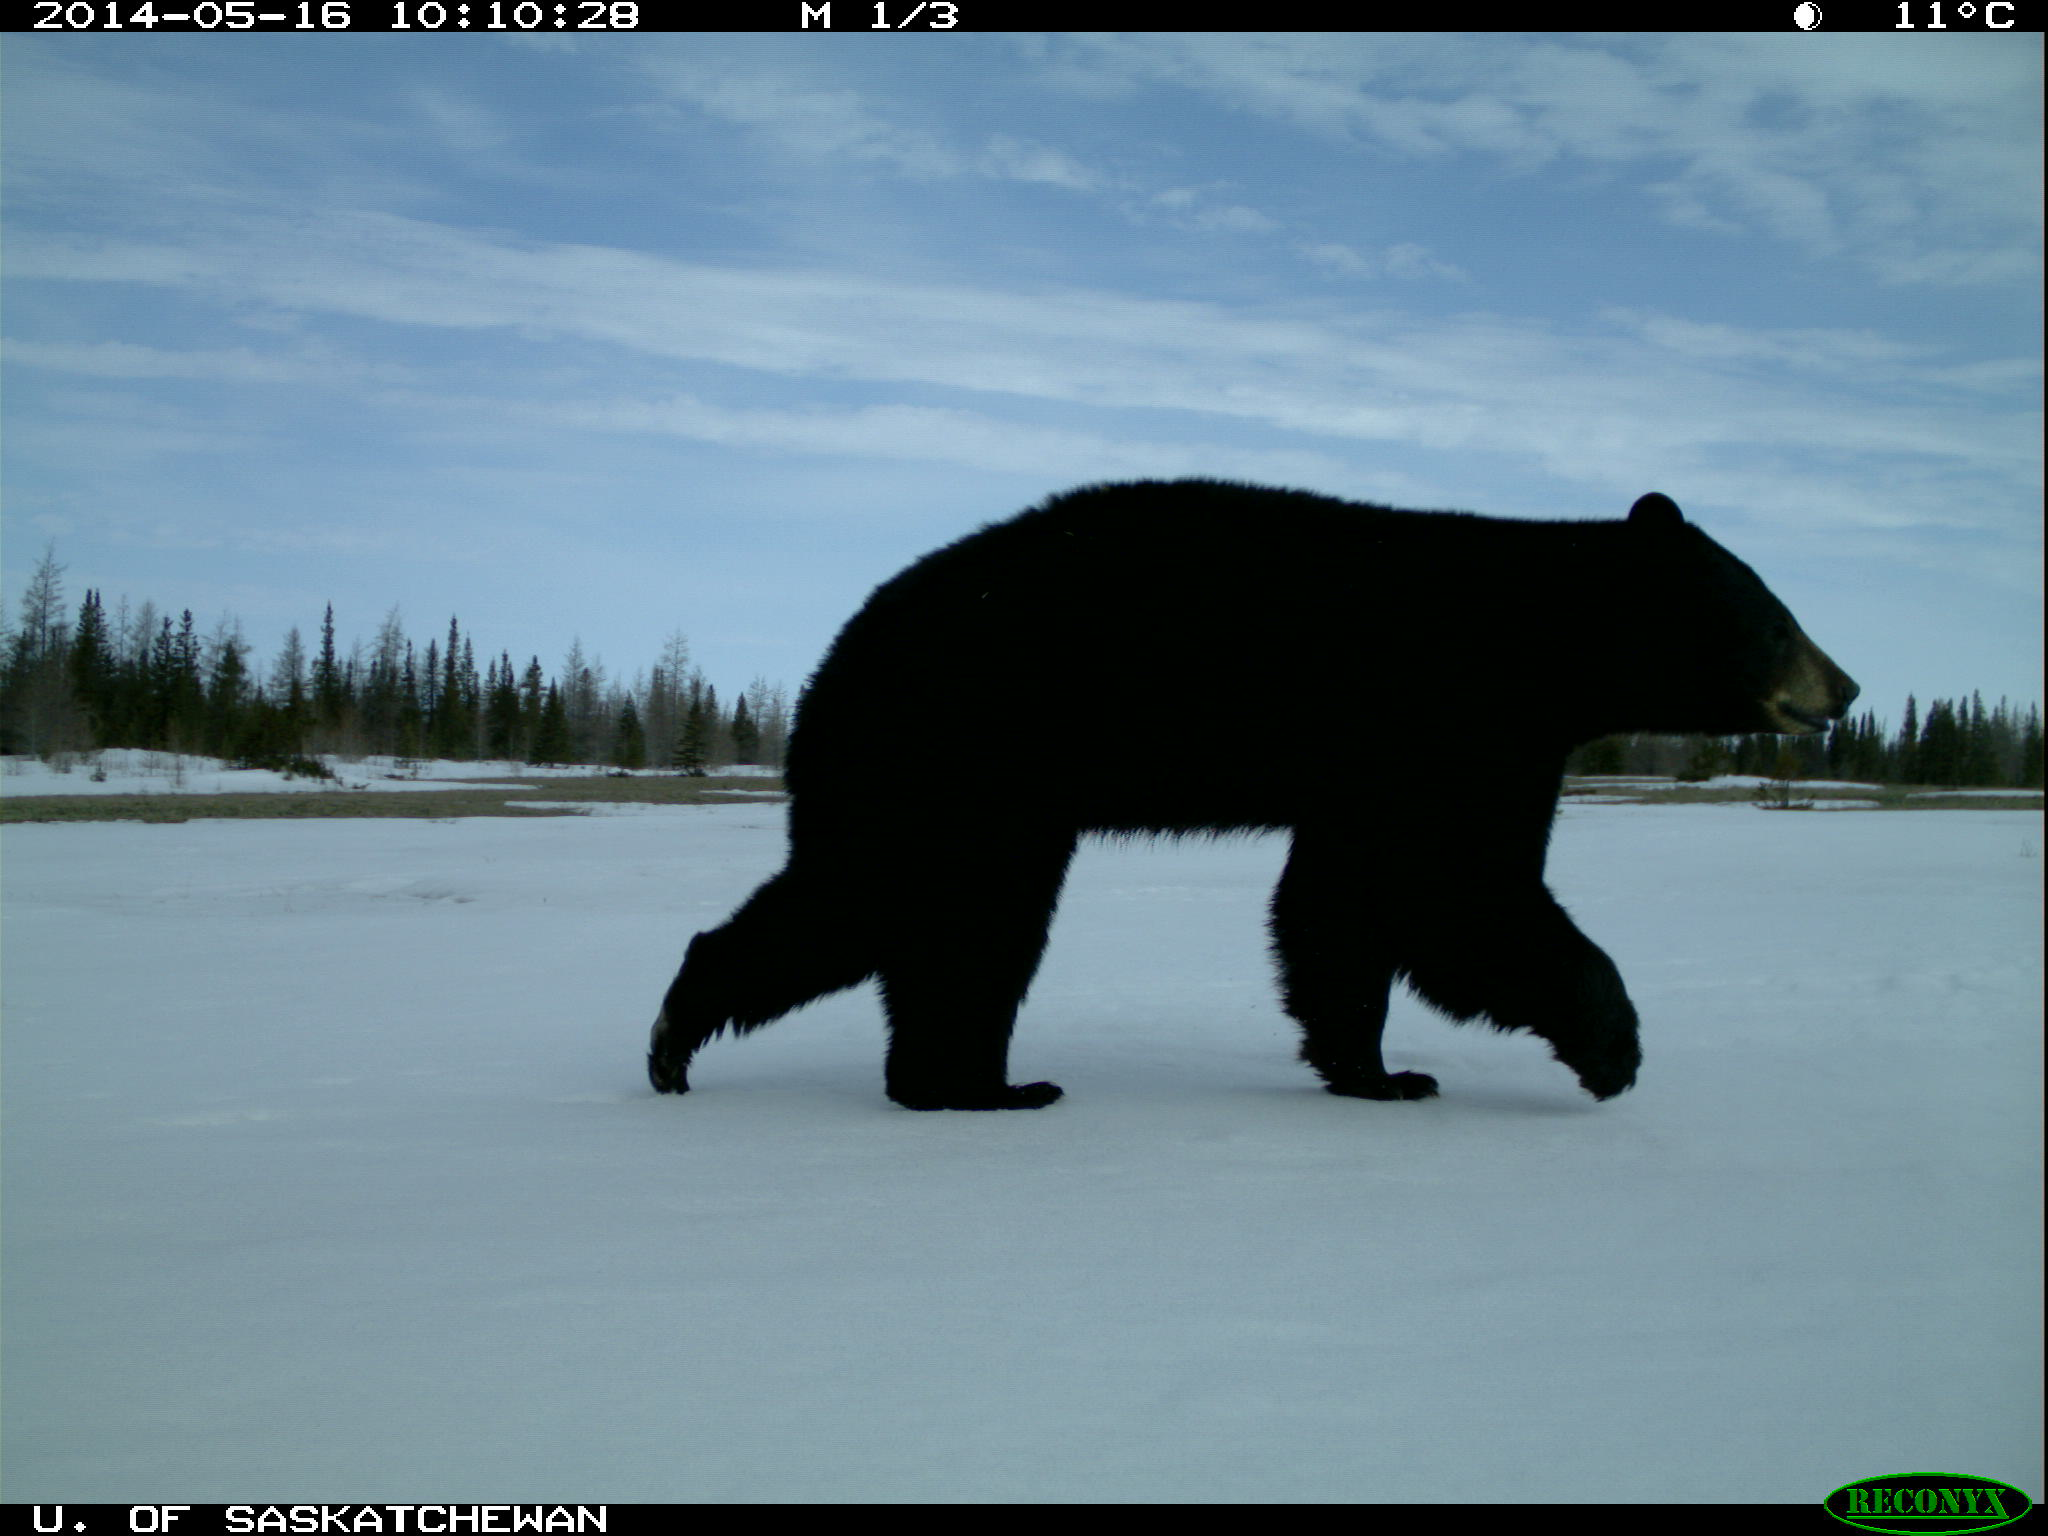 A black bear was captured wandering past a camera trap roughly three hours after a polar bear. Scientists are exploring temporal and spatial overlap among the three bear species.